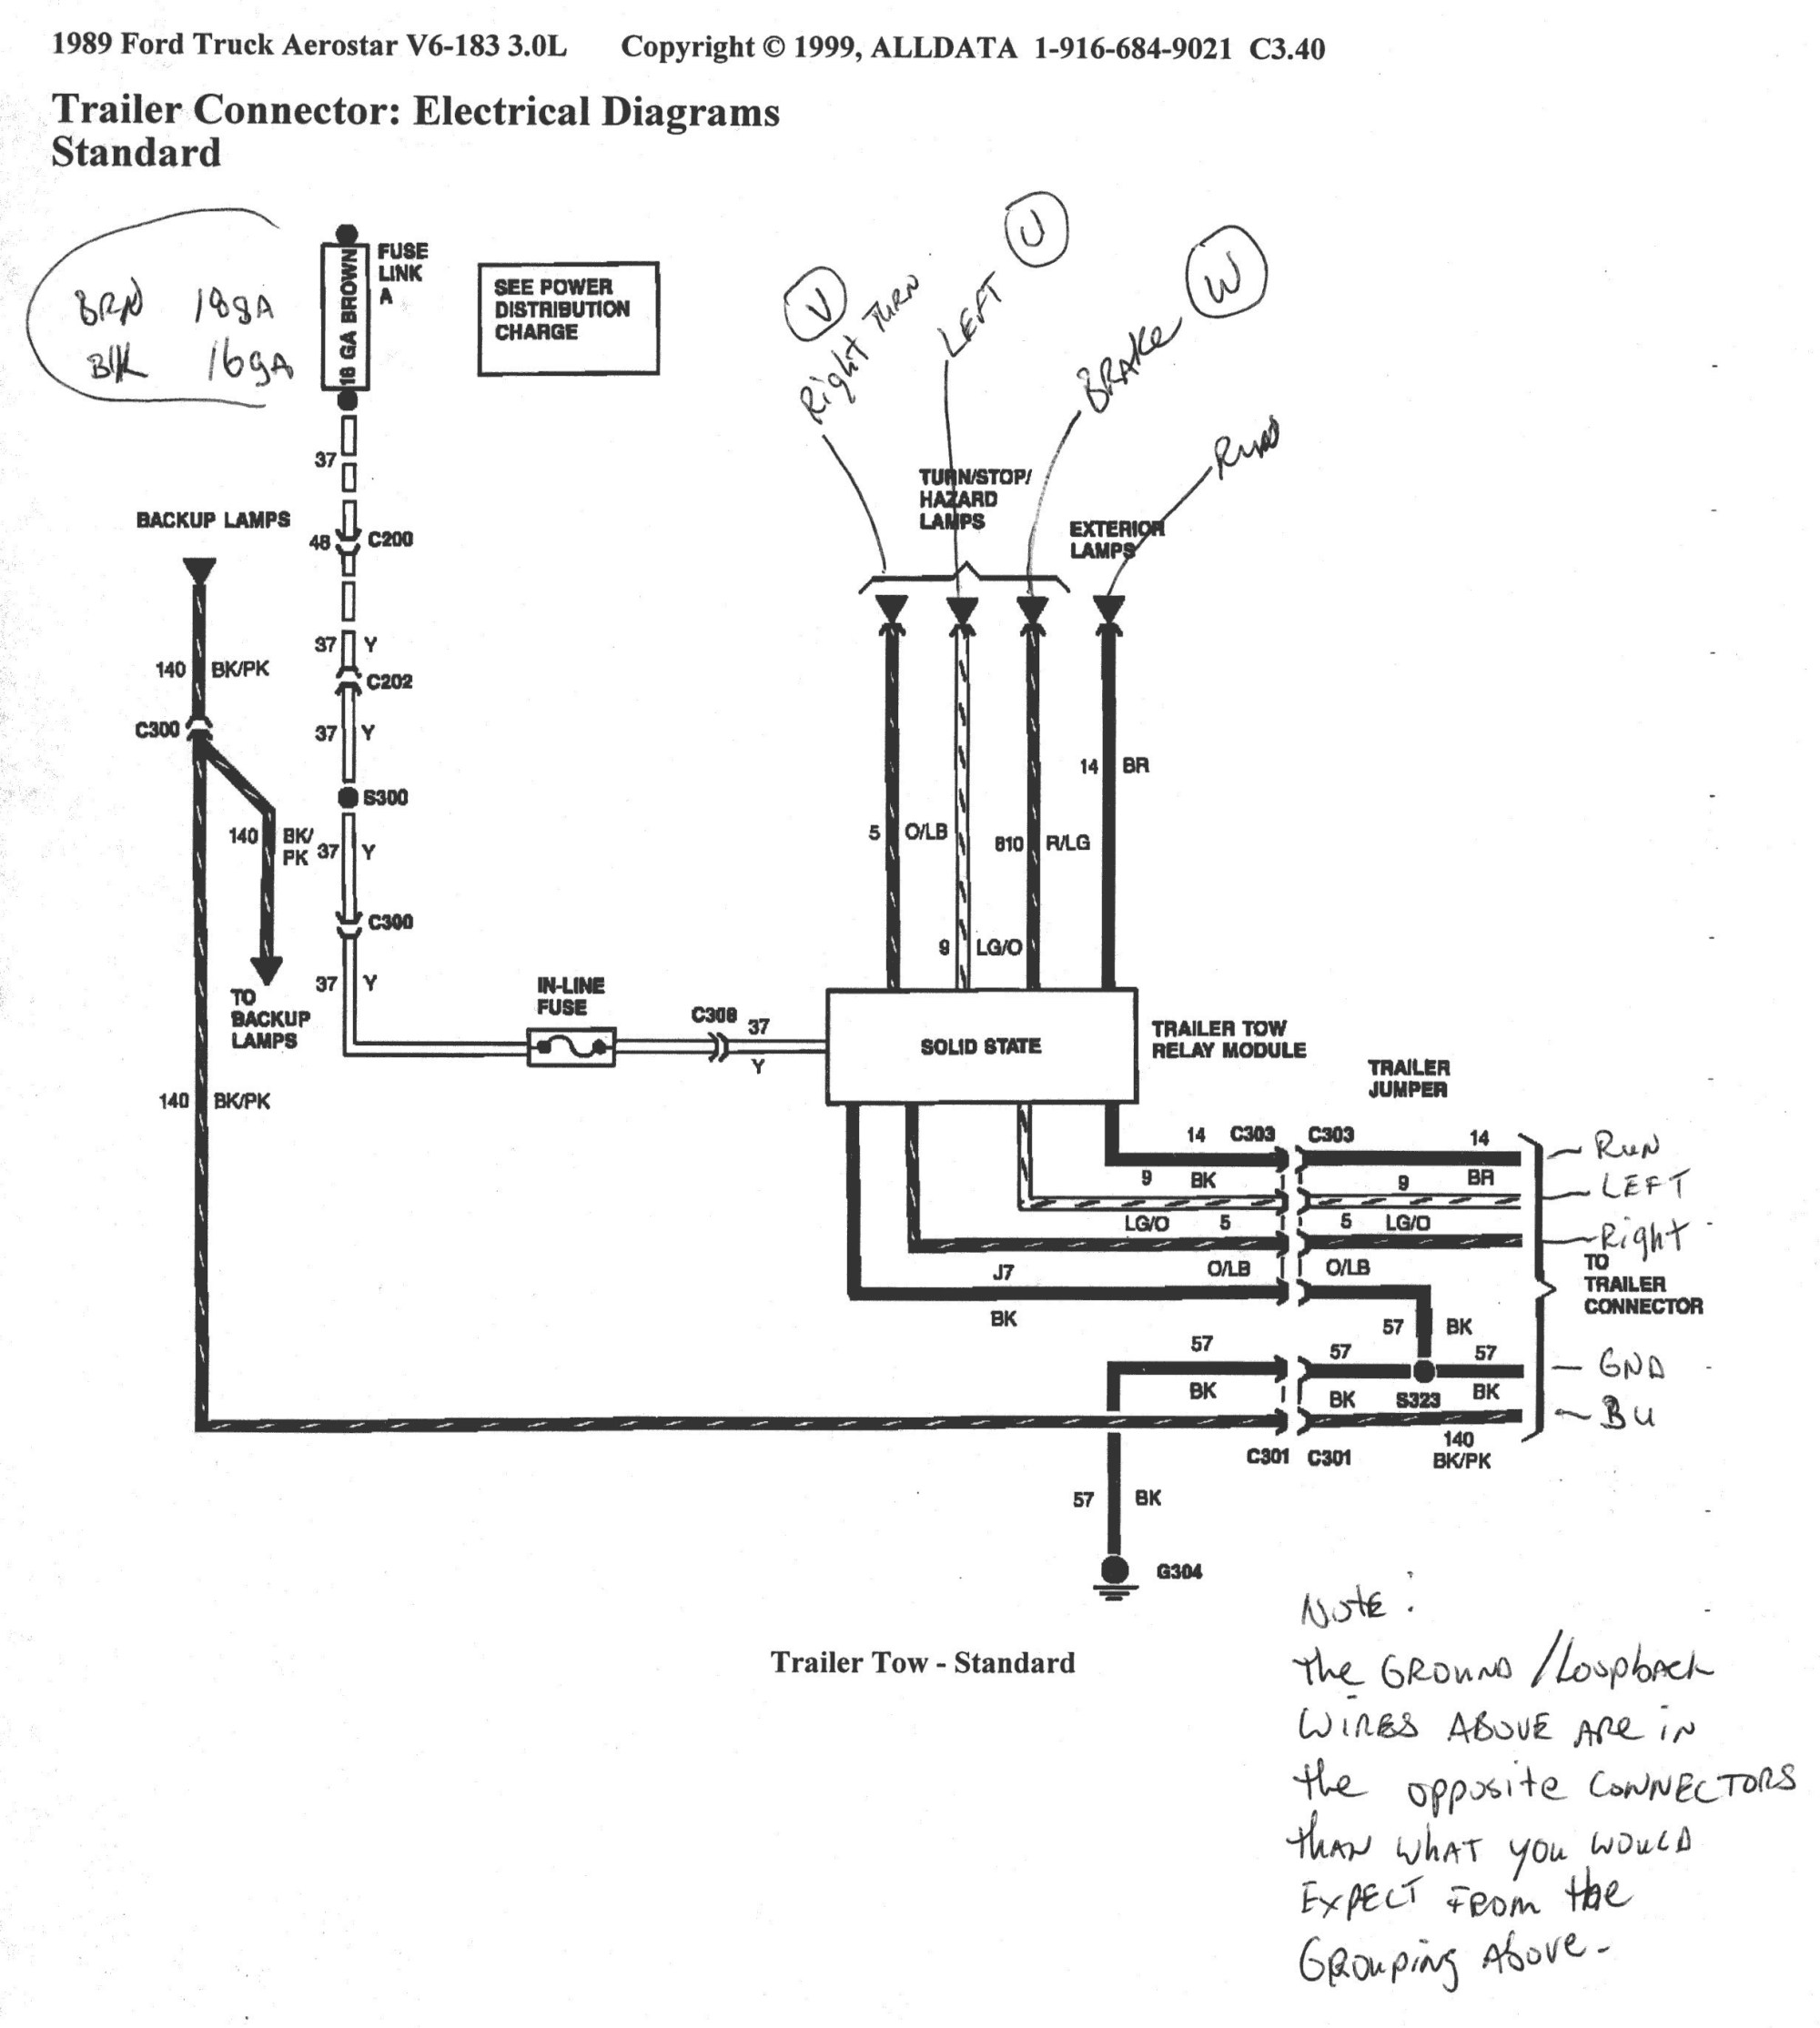 hight resolution of wiring diagram for 1980 ford van wiring diagram expert 2007 ford e van tail light wiring diagram